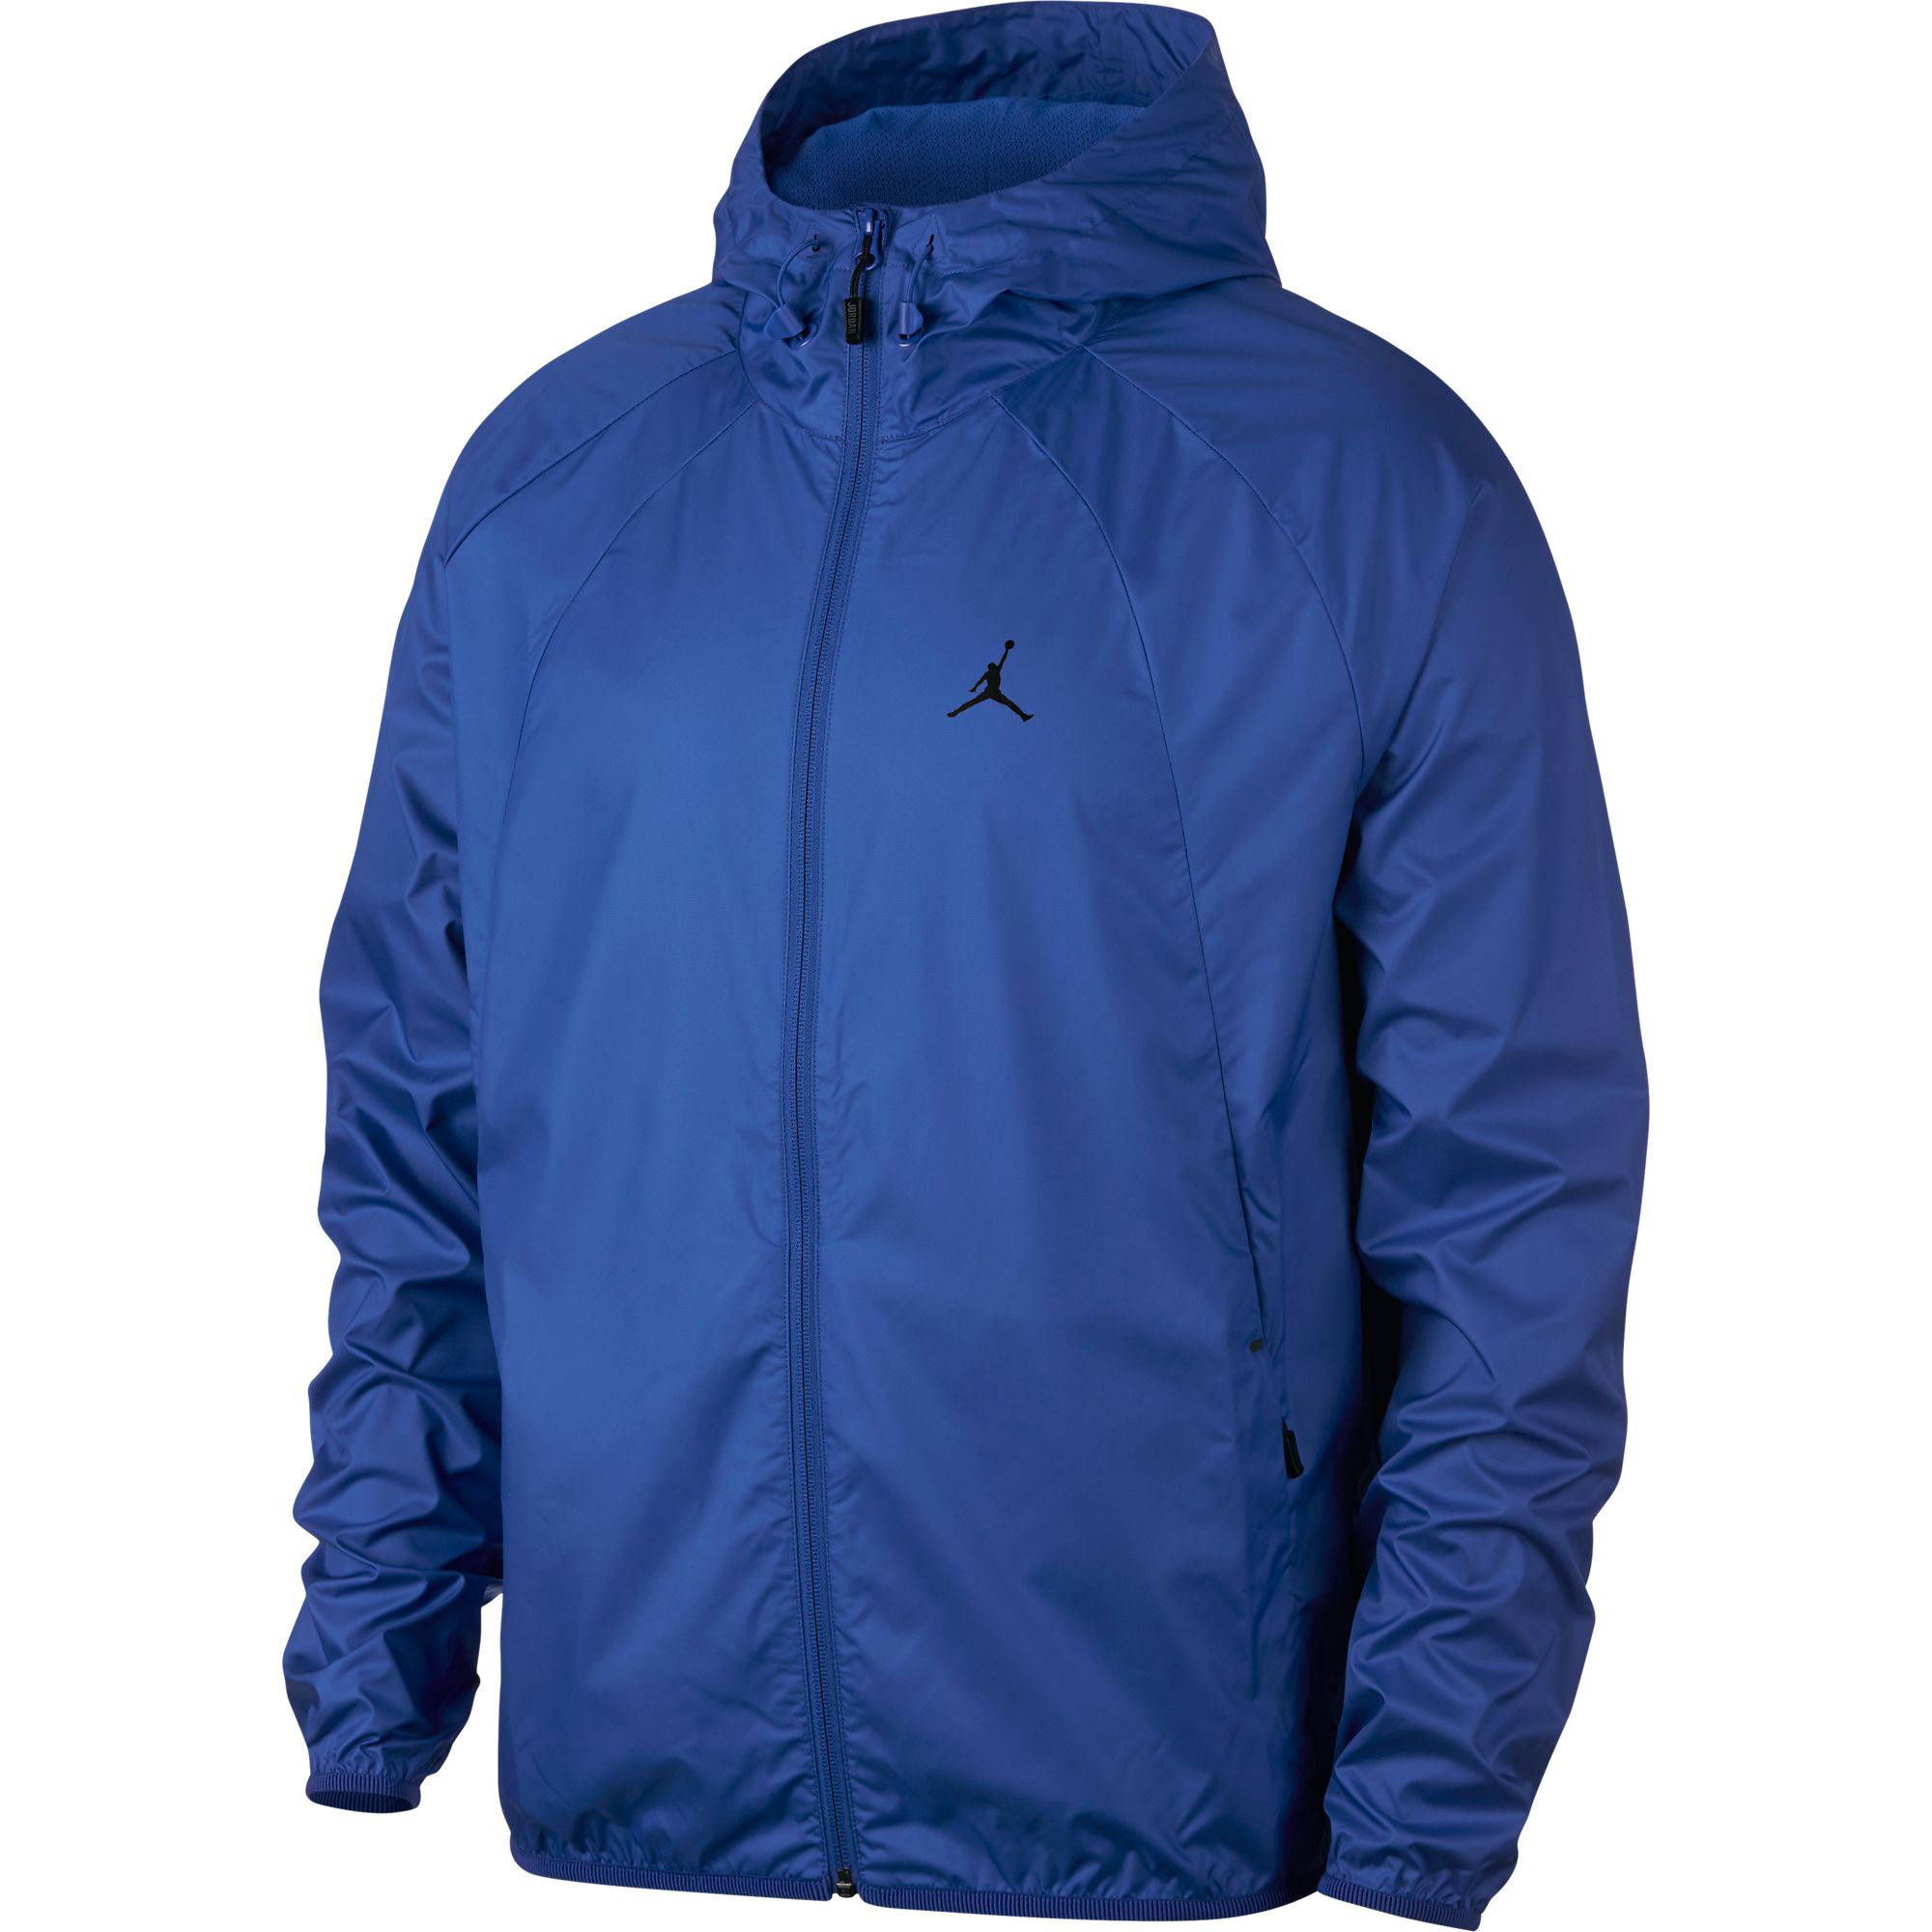 1a96a3e9c75e Details about Jordan Sportswear Wings Men s Windbreaker Jacket Royal  Blue Black 897884-480